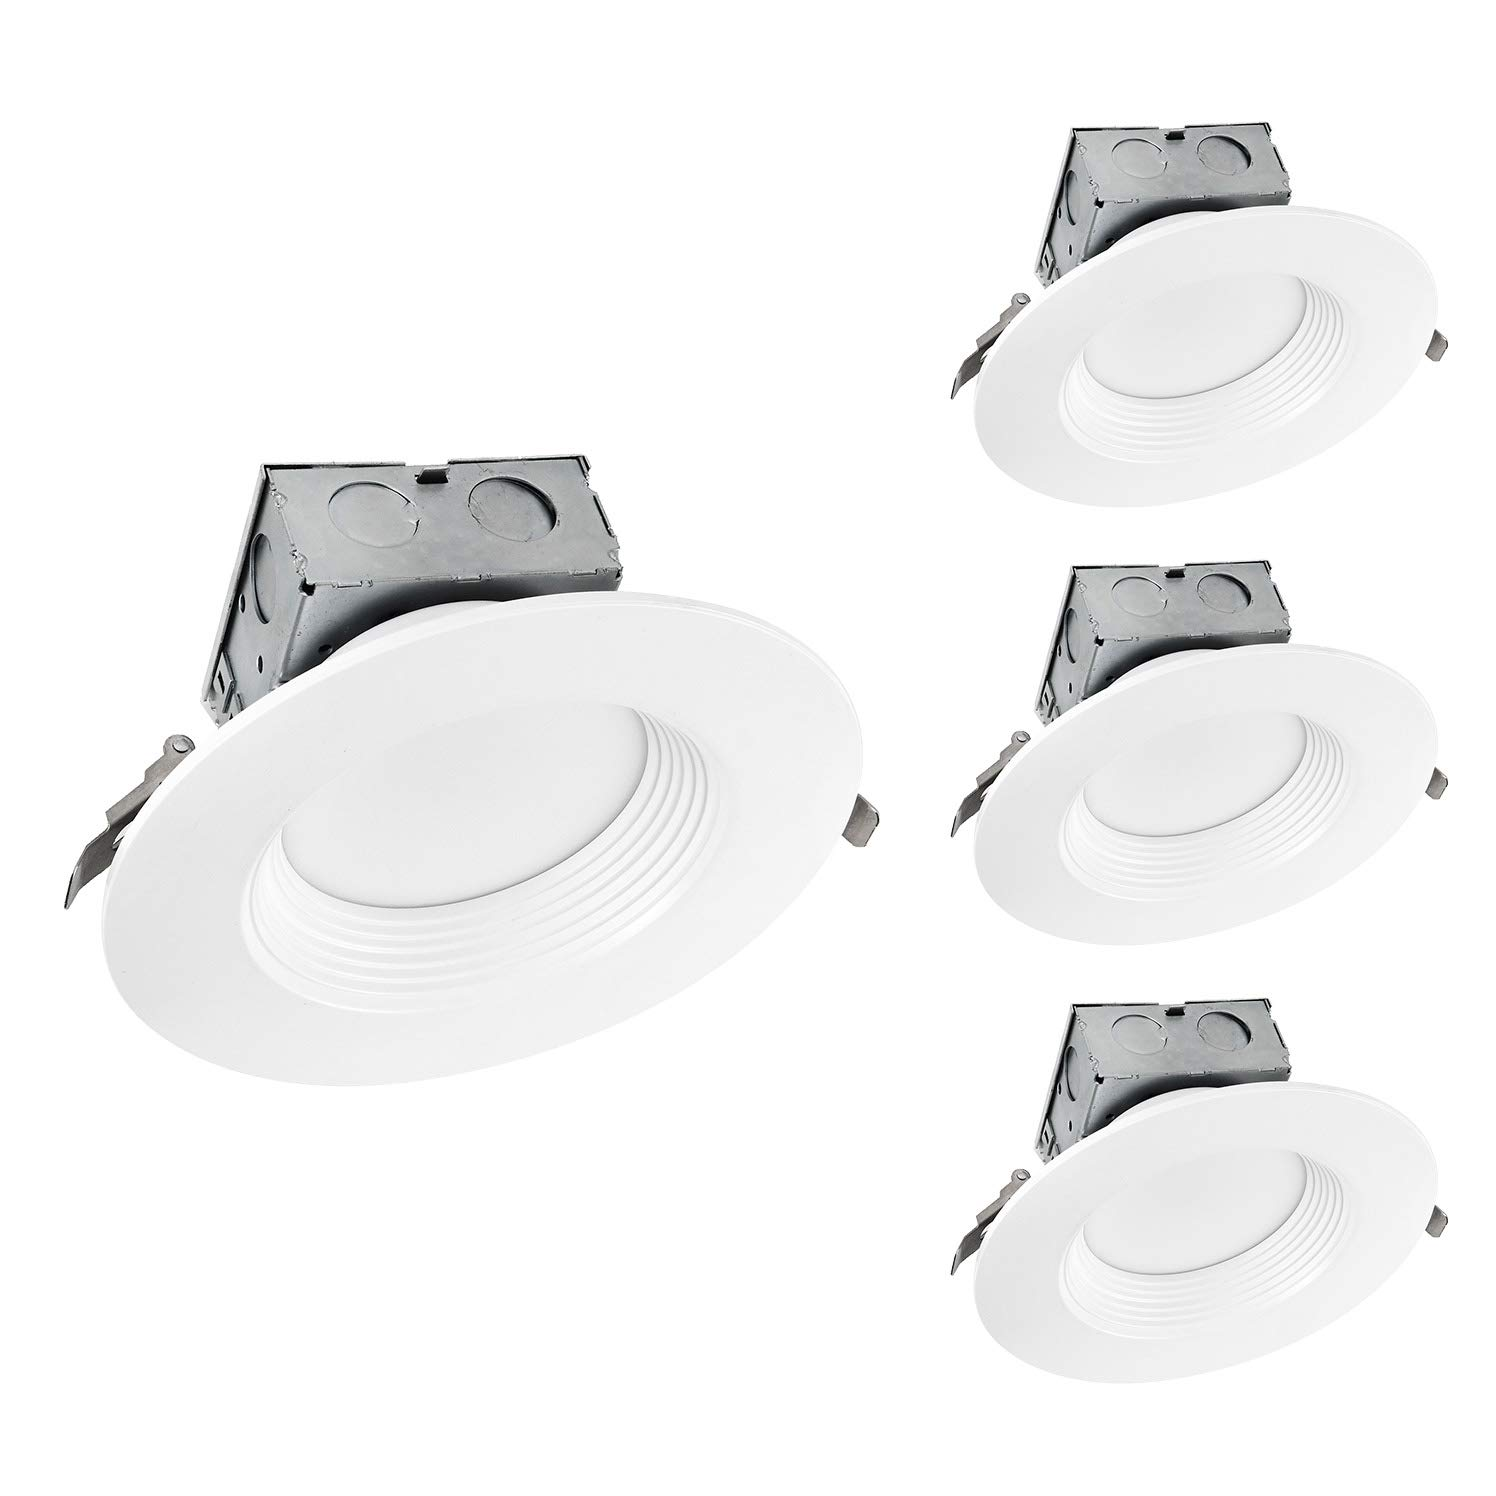 OSTWIN (4 Pack) 6 inch IC Rated Round LED Ceiling Recessed Downlight Kit With Junction box, Baffle Trim, Dimmable, 15W(120Watt Repl) 5000K Daylight, 1100Lm. No Can Needed ETL and Energy Star Listed